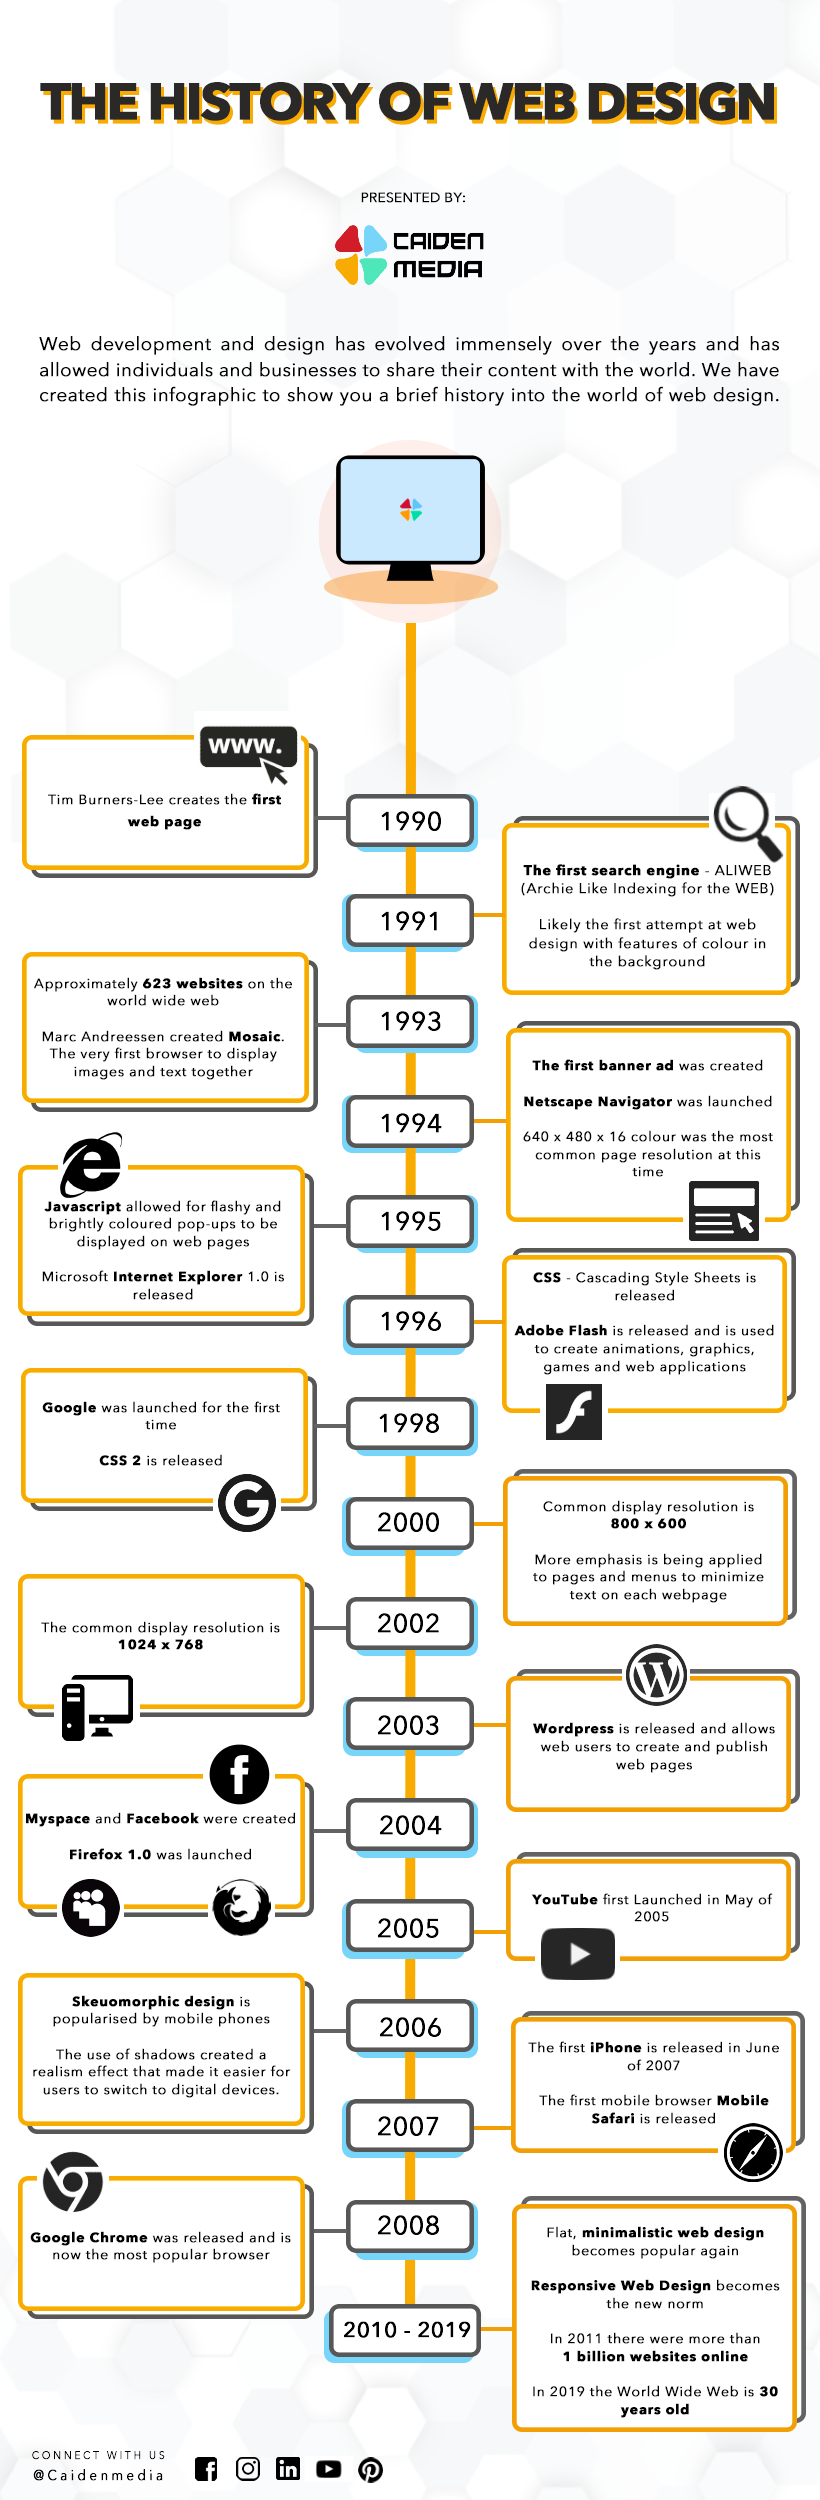 A infographic display the history of web design